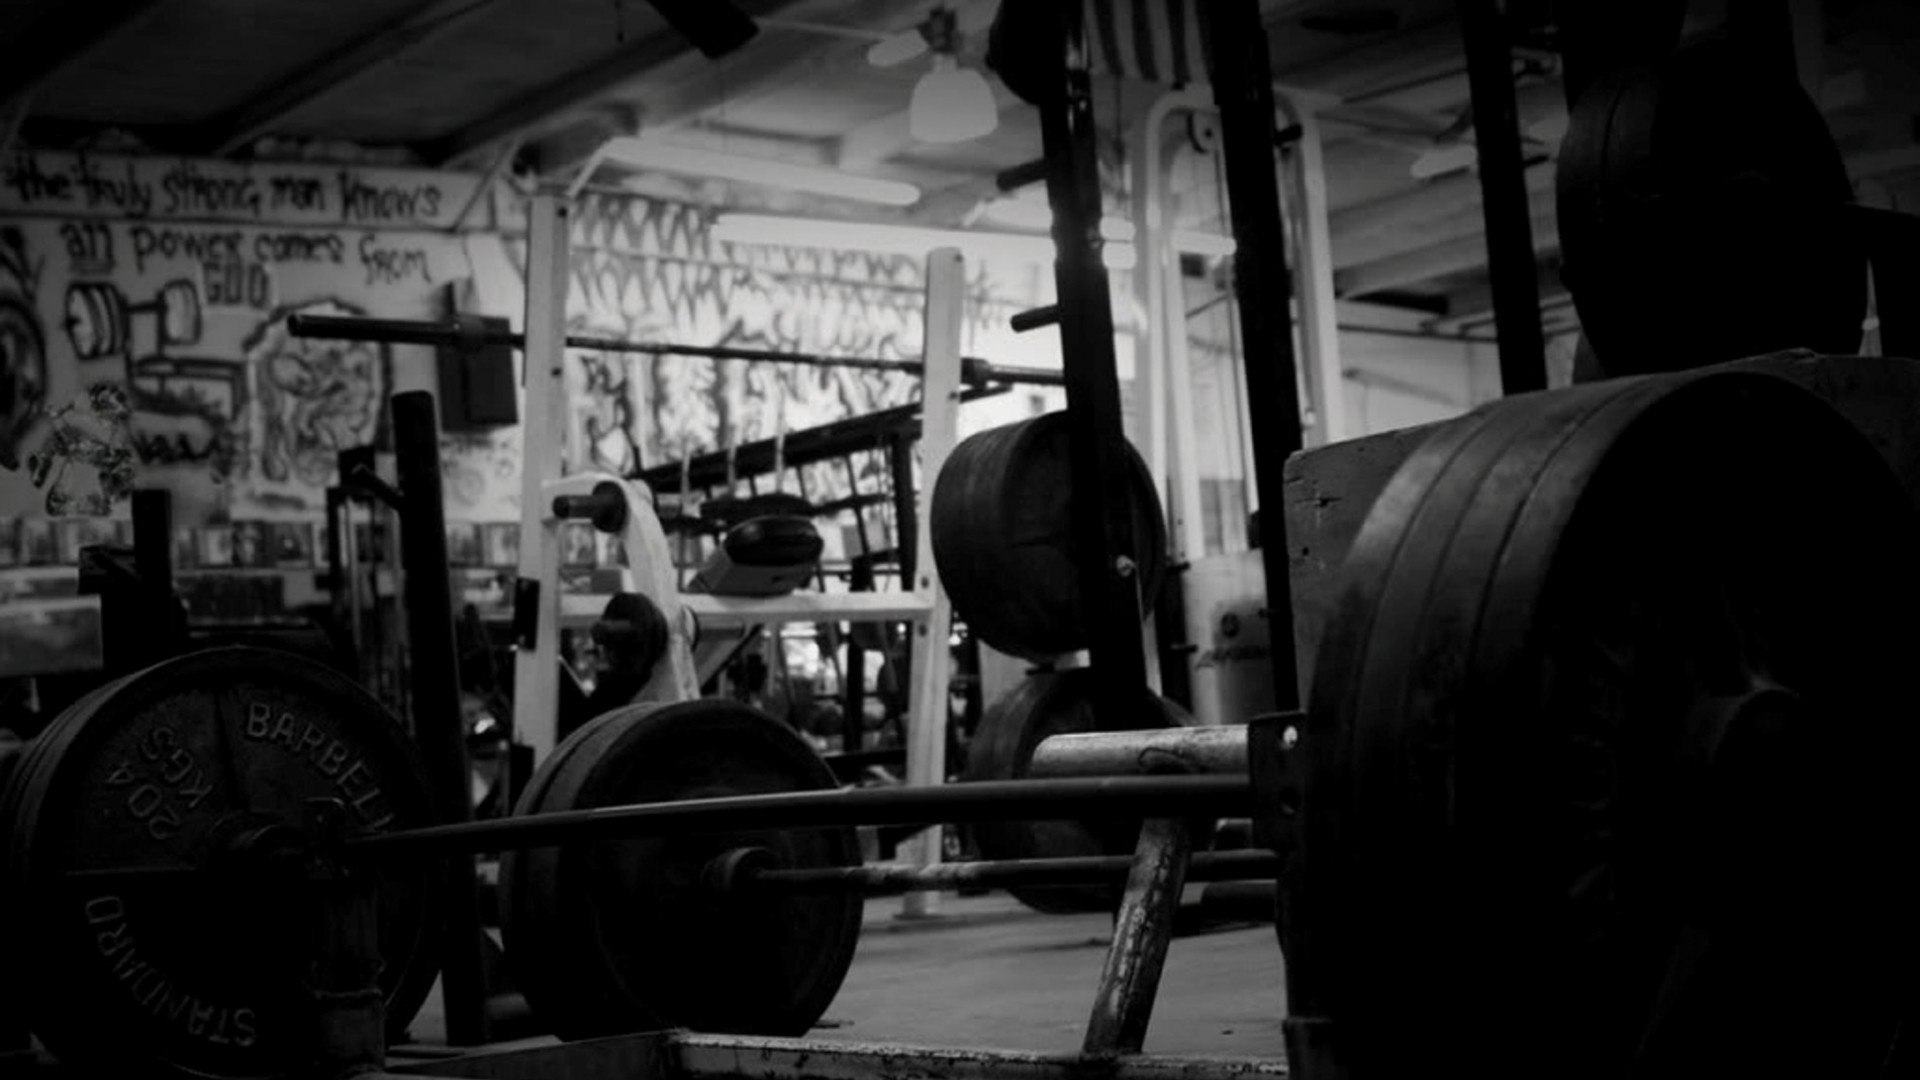 crossfit-gym-wallpapers-high-quality.jpg